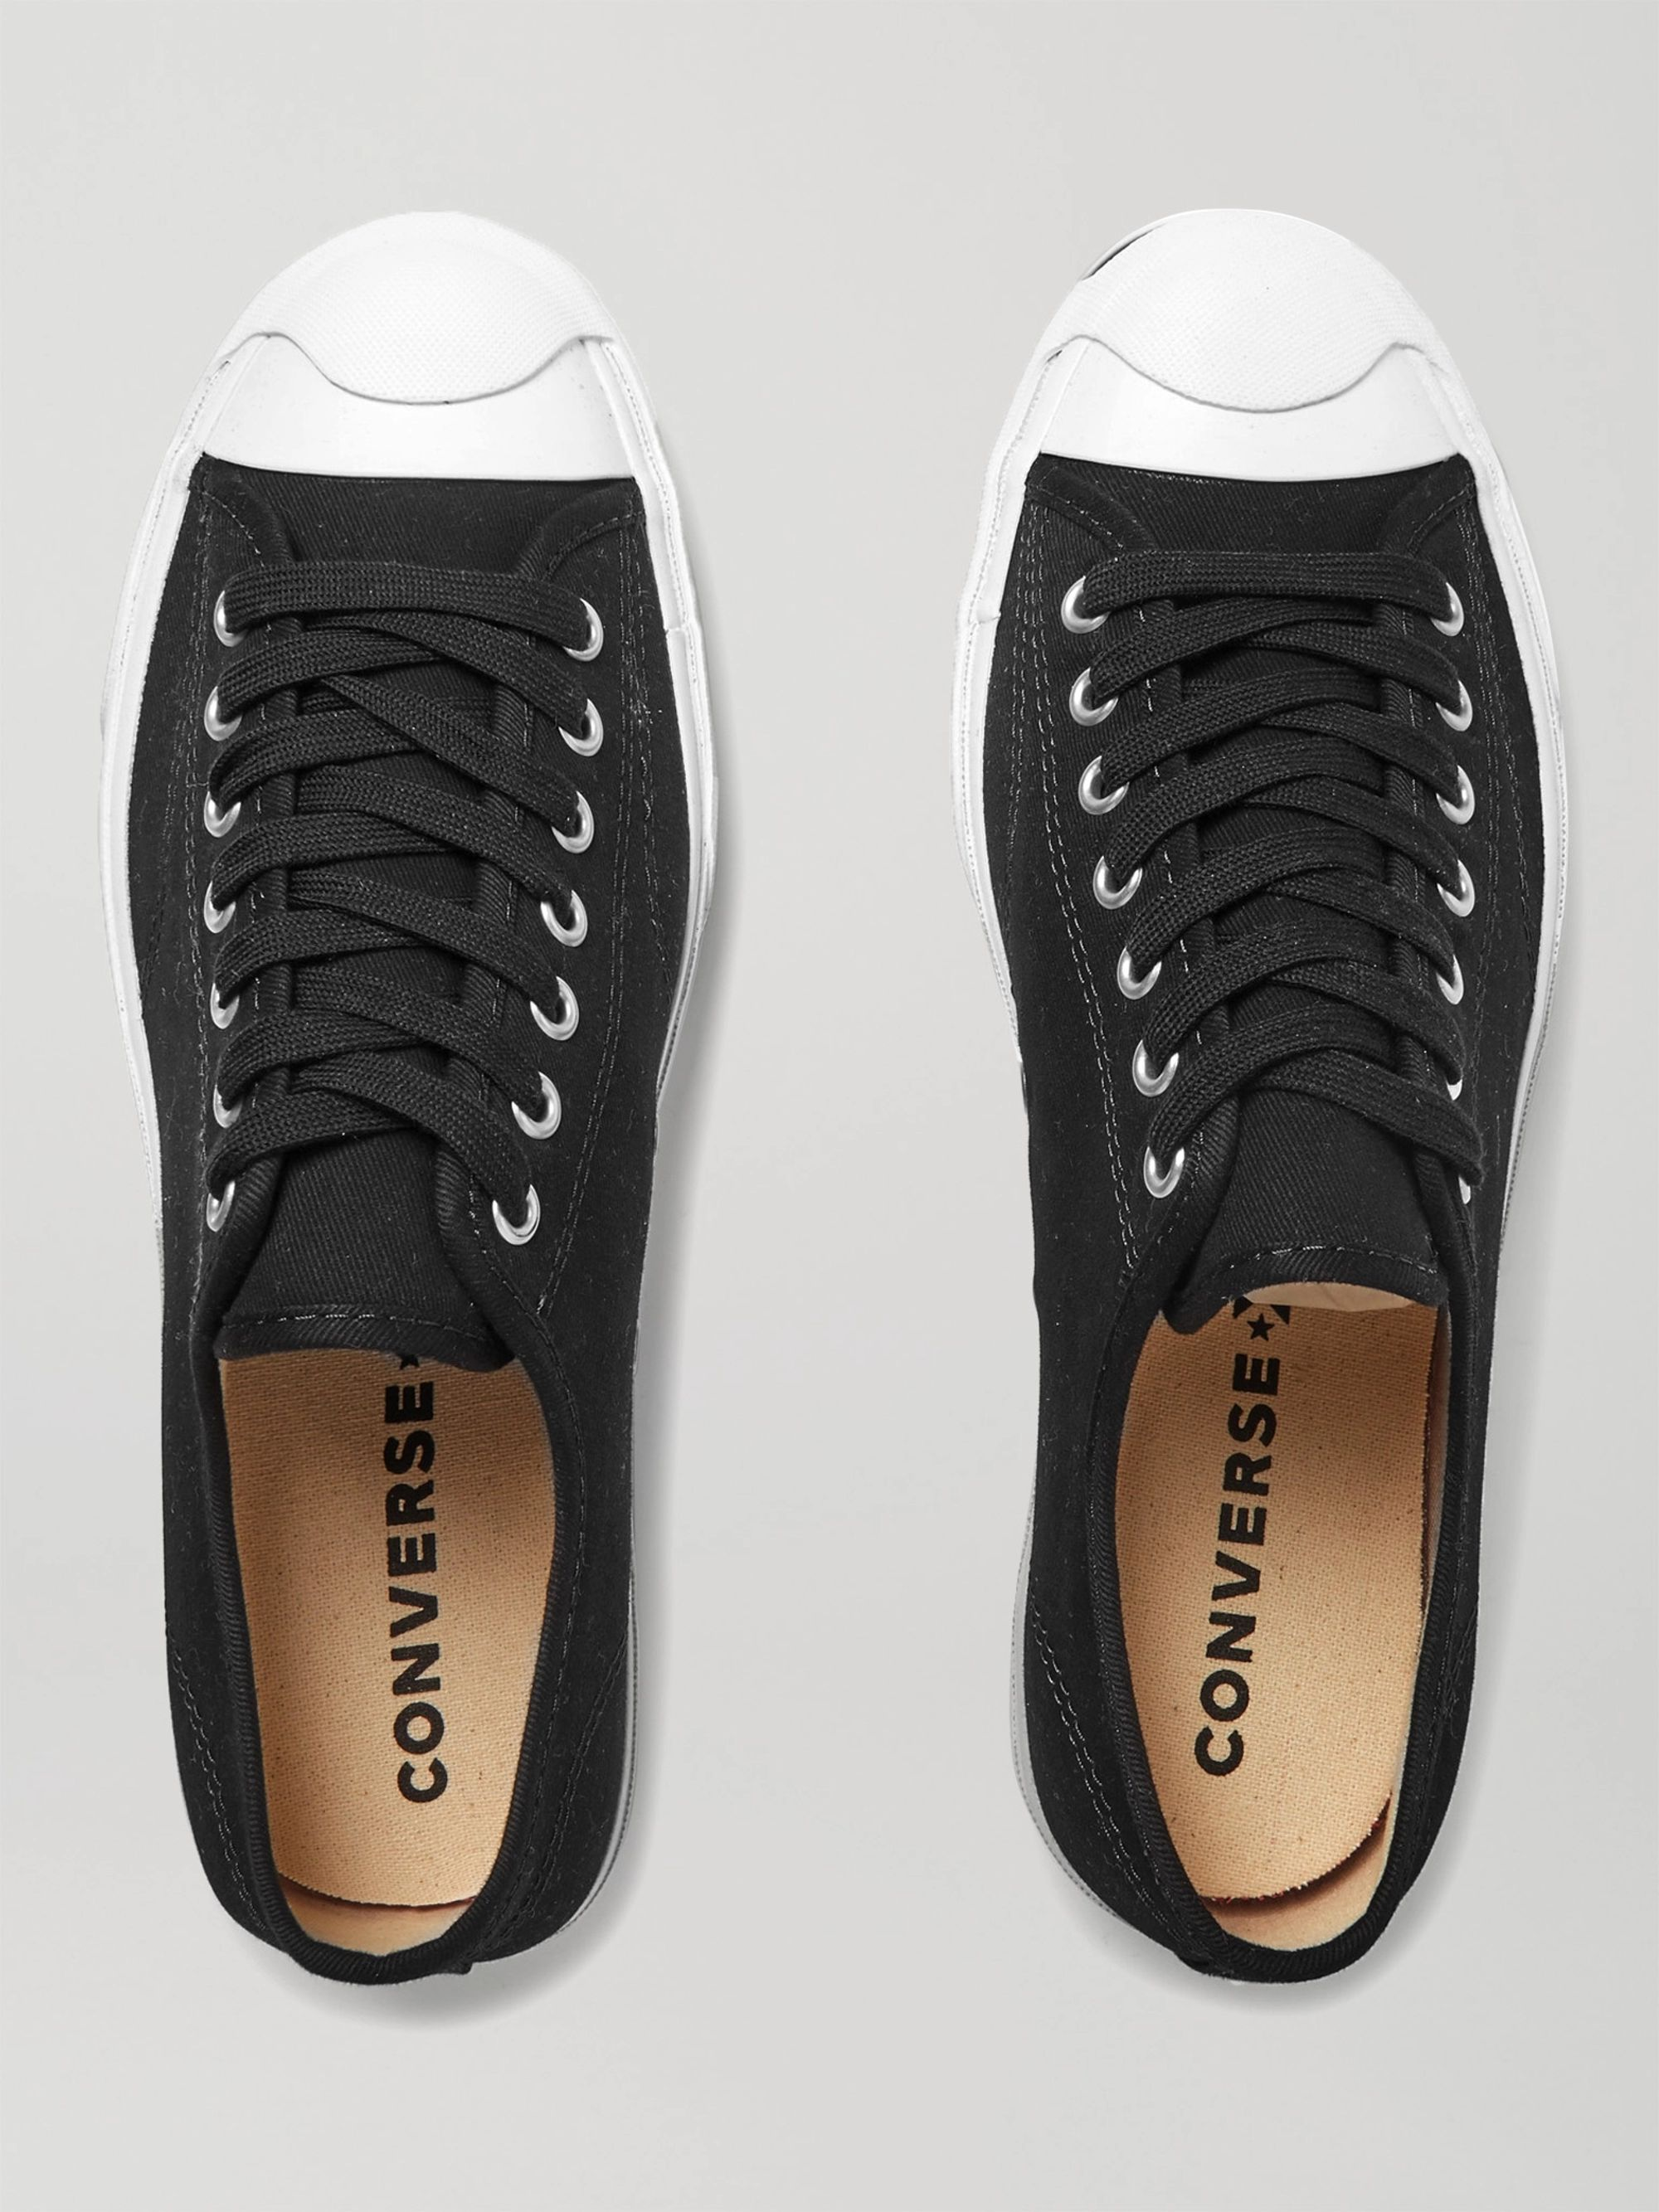 Converse Jack Purcell OX Canvas Sneakers